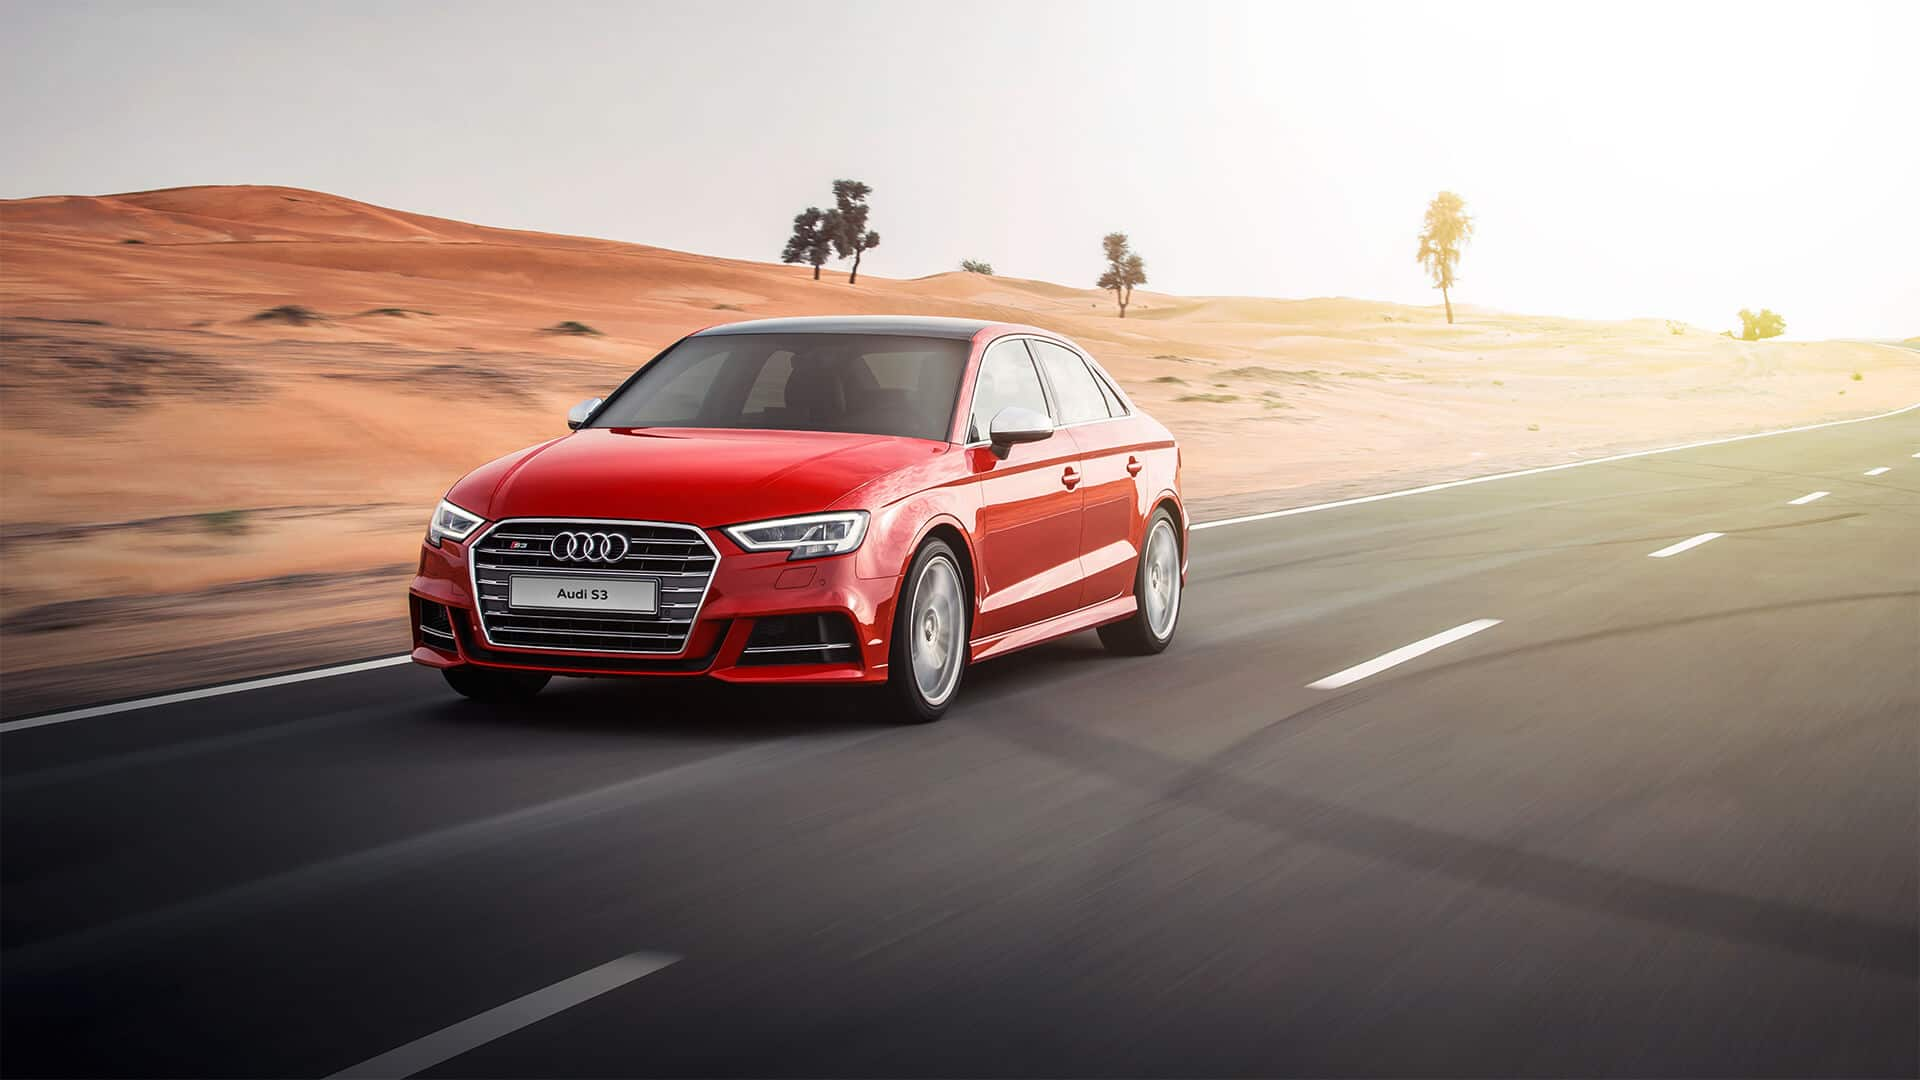 Audi Me Careers Audi A A Audi Middle EastCareers Audi EgyptCareers - Audi chantilly